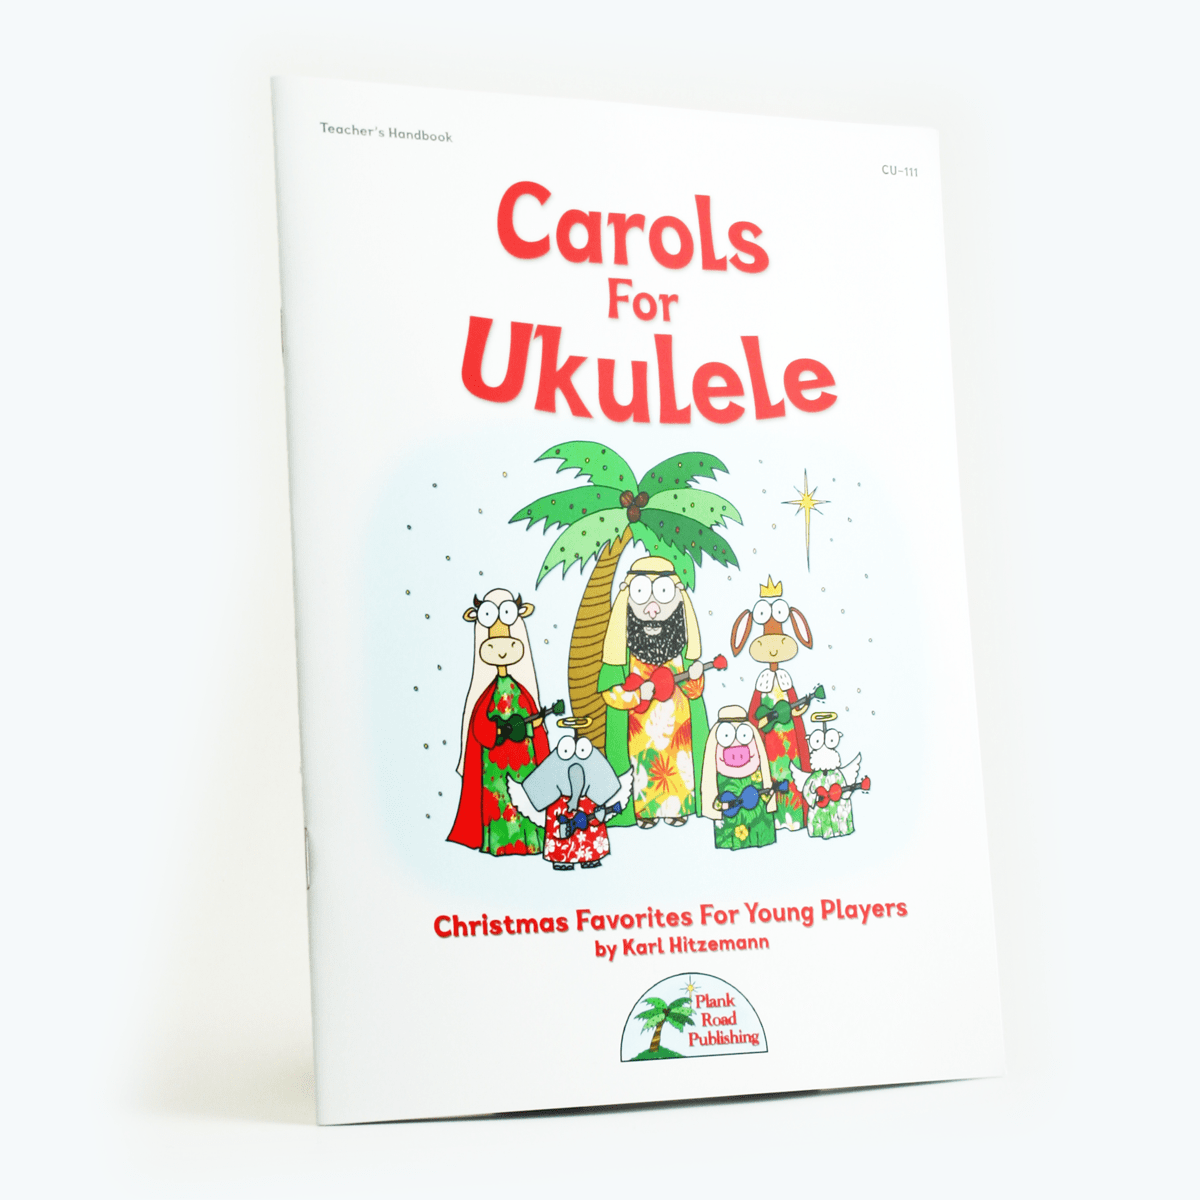 Carols for Ukulele